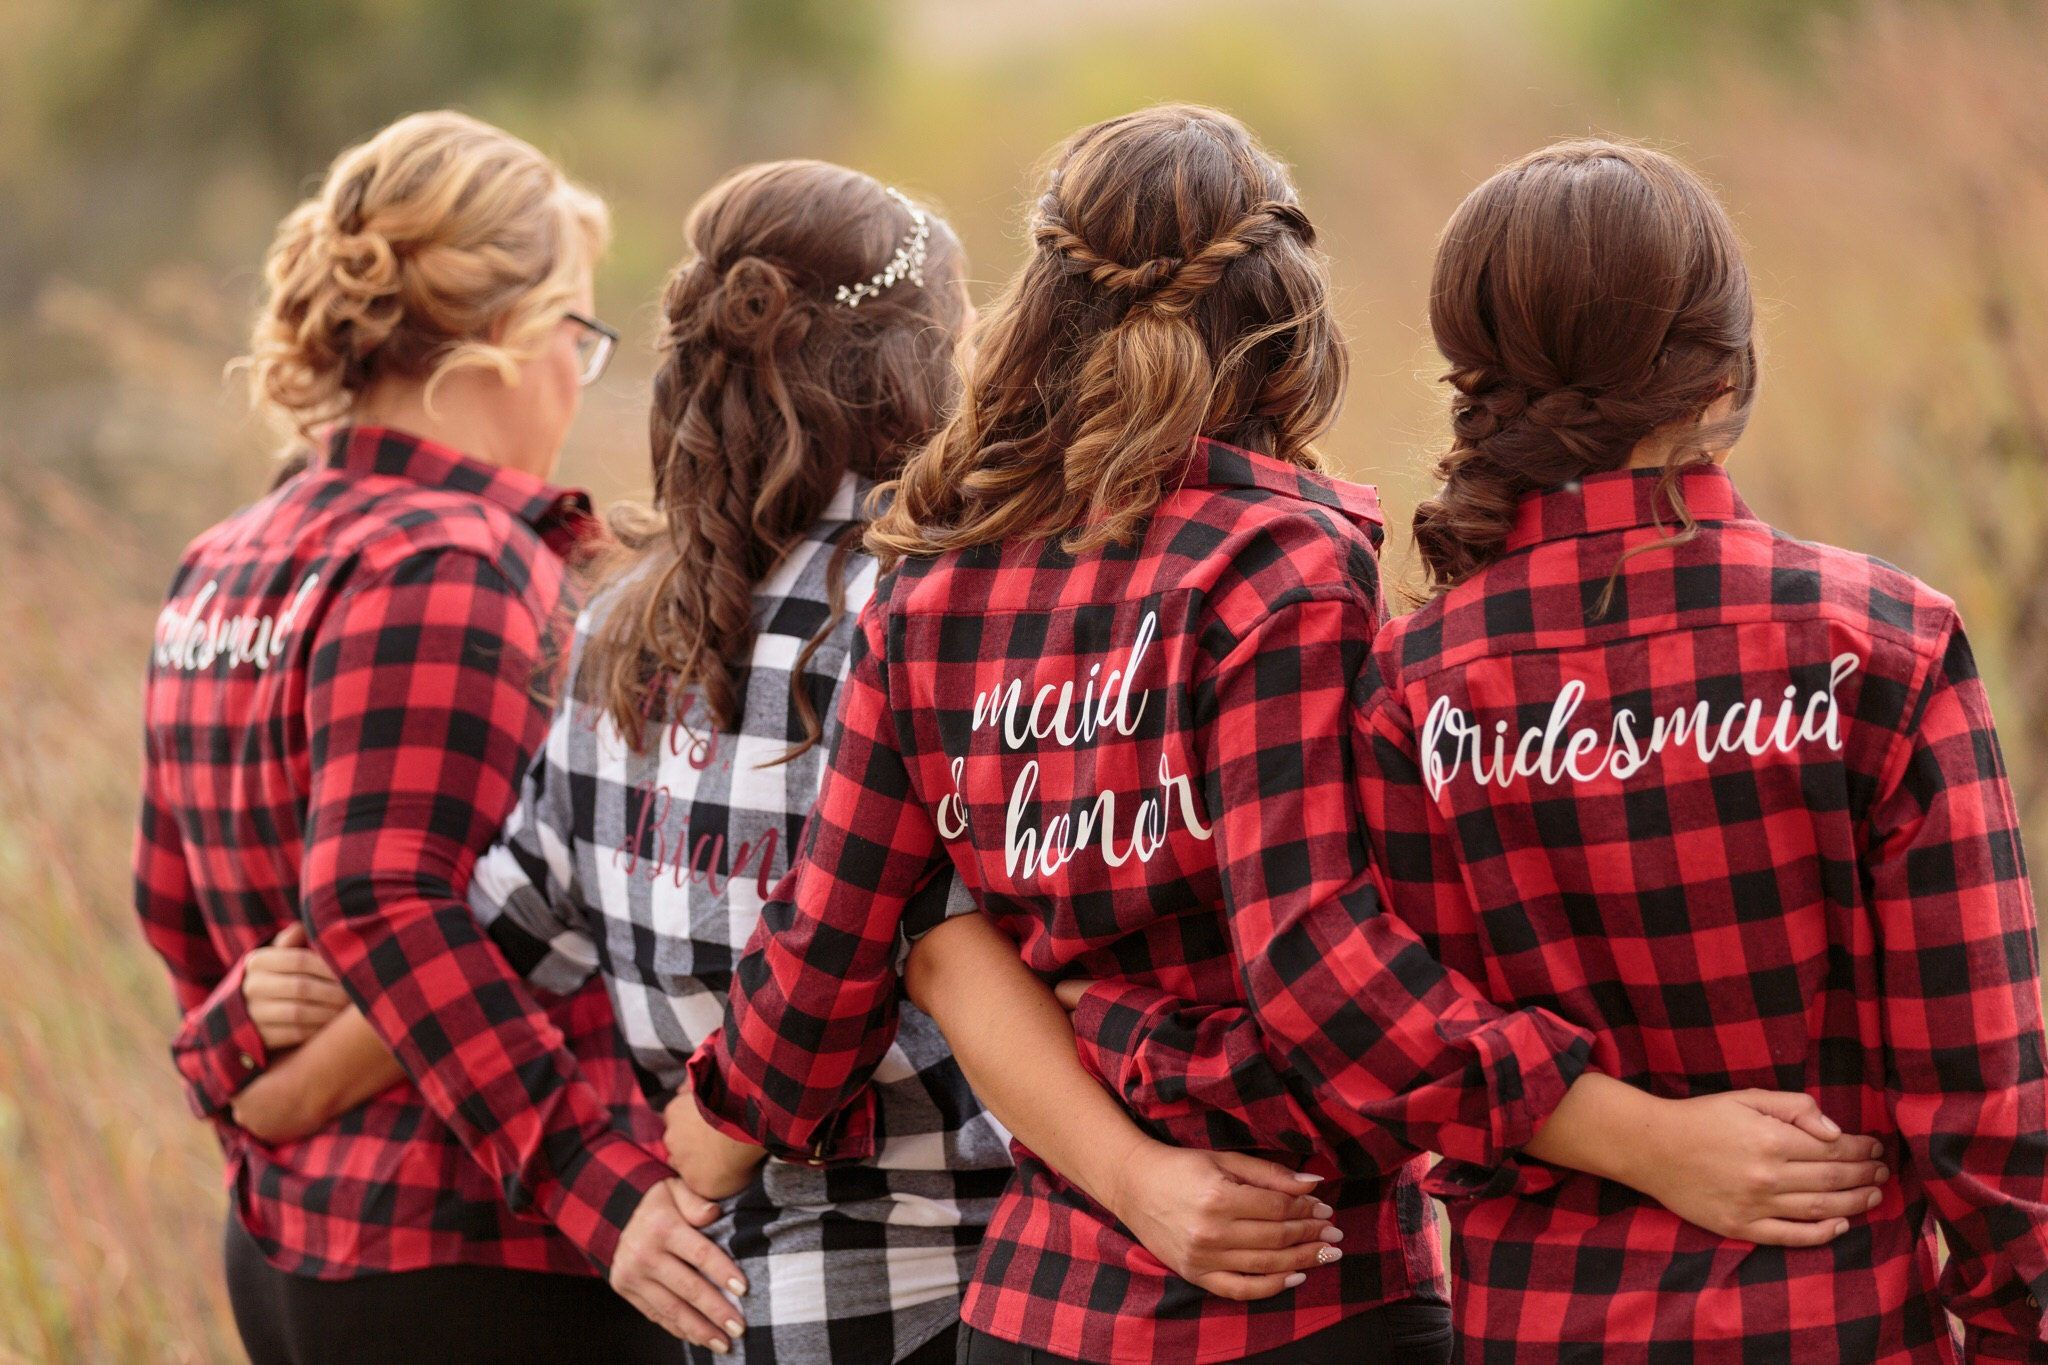 Flannel shirt party  Bridal Party Flannels Bridesmaid Maid of Honor Bride Red Black